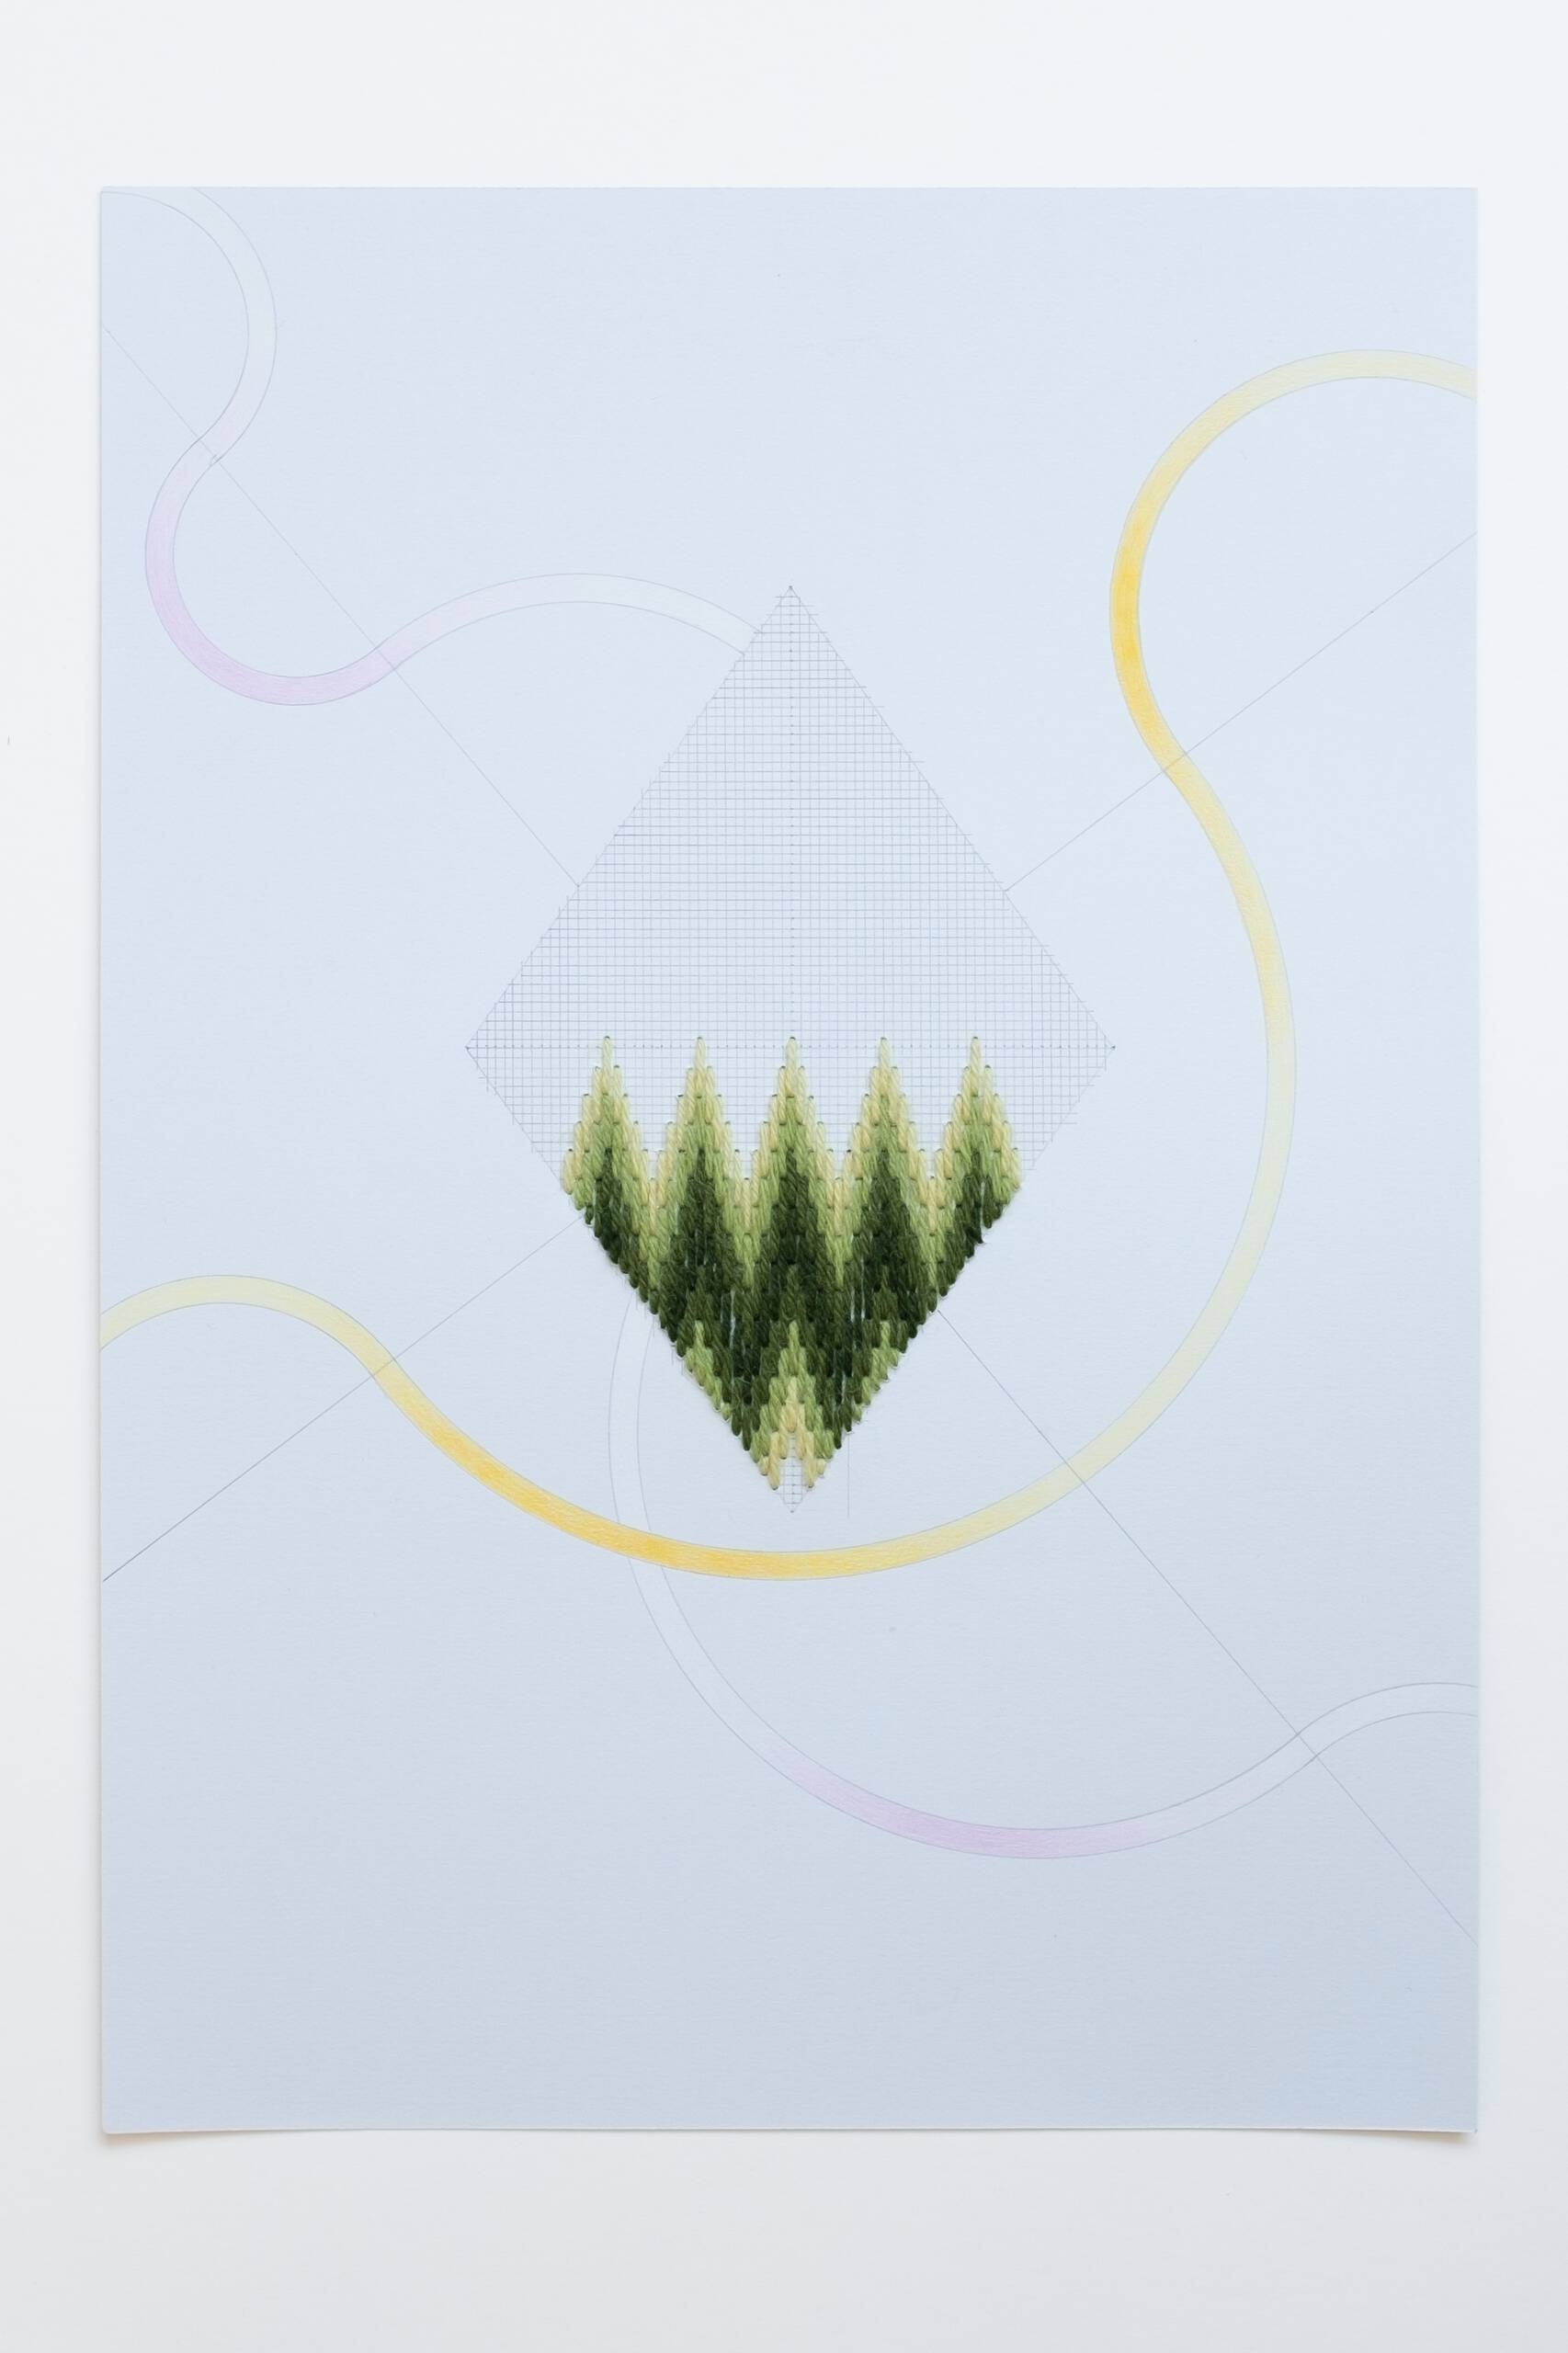 Bargello diamond [yellow-green on grey], Hand-embroidered wool, pencil and colored pencil on paper, 2020